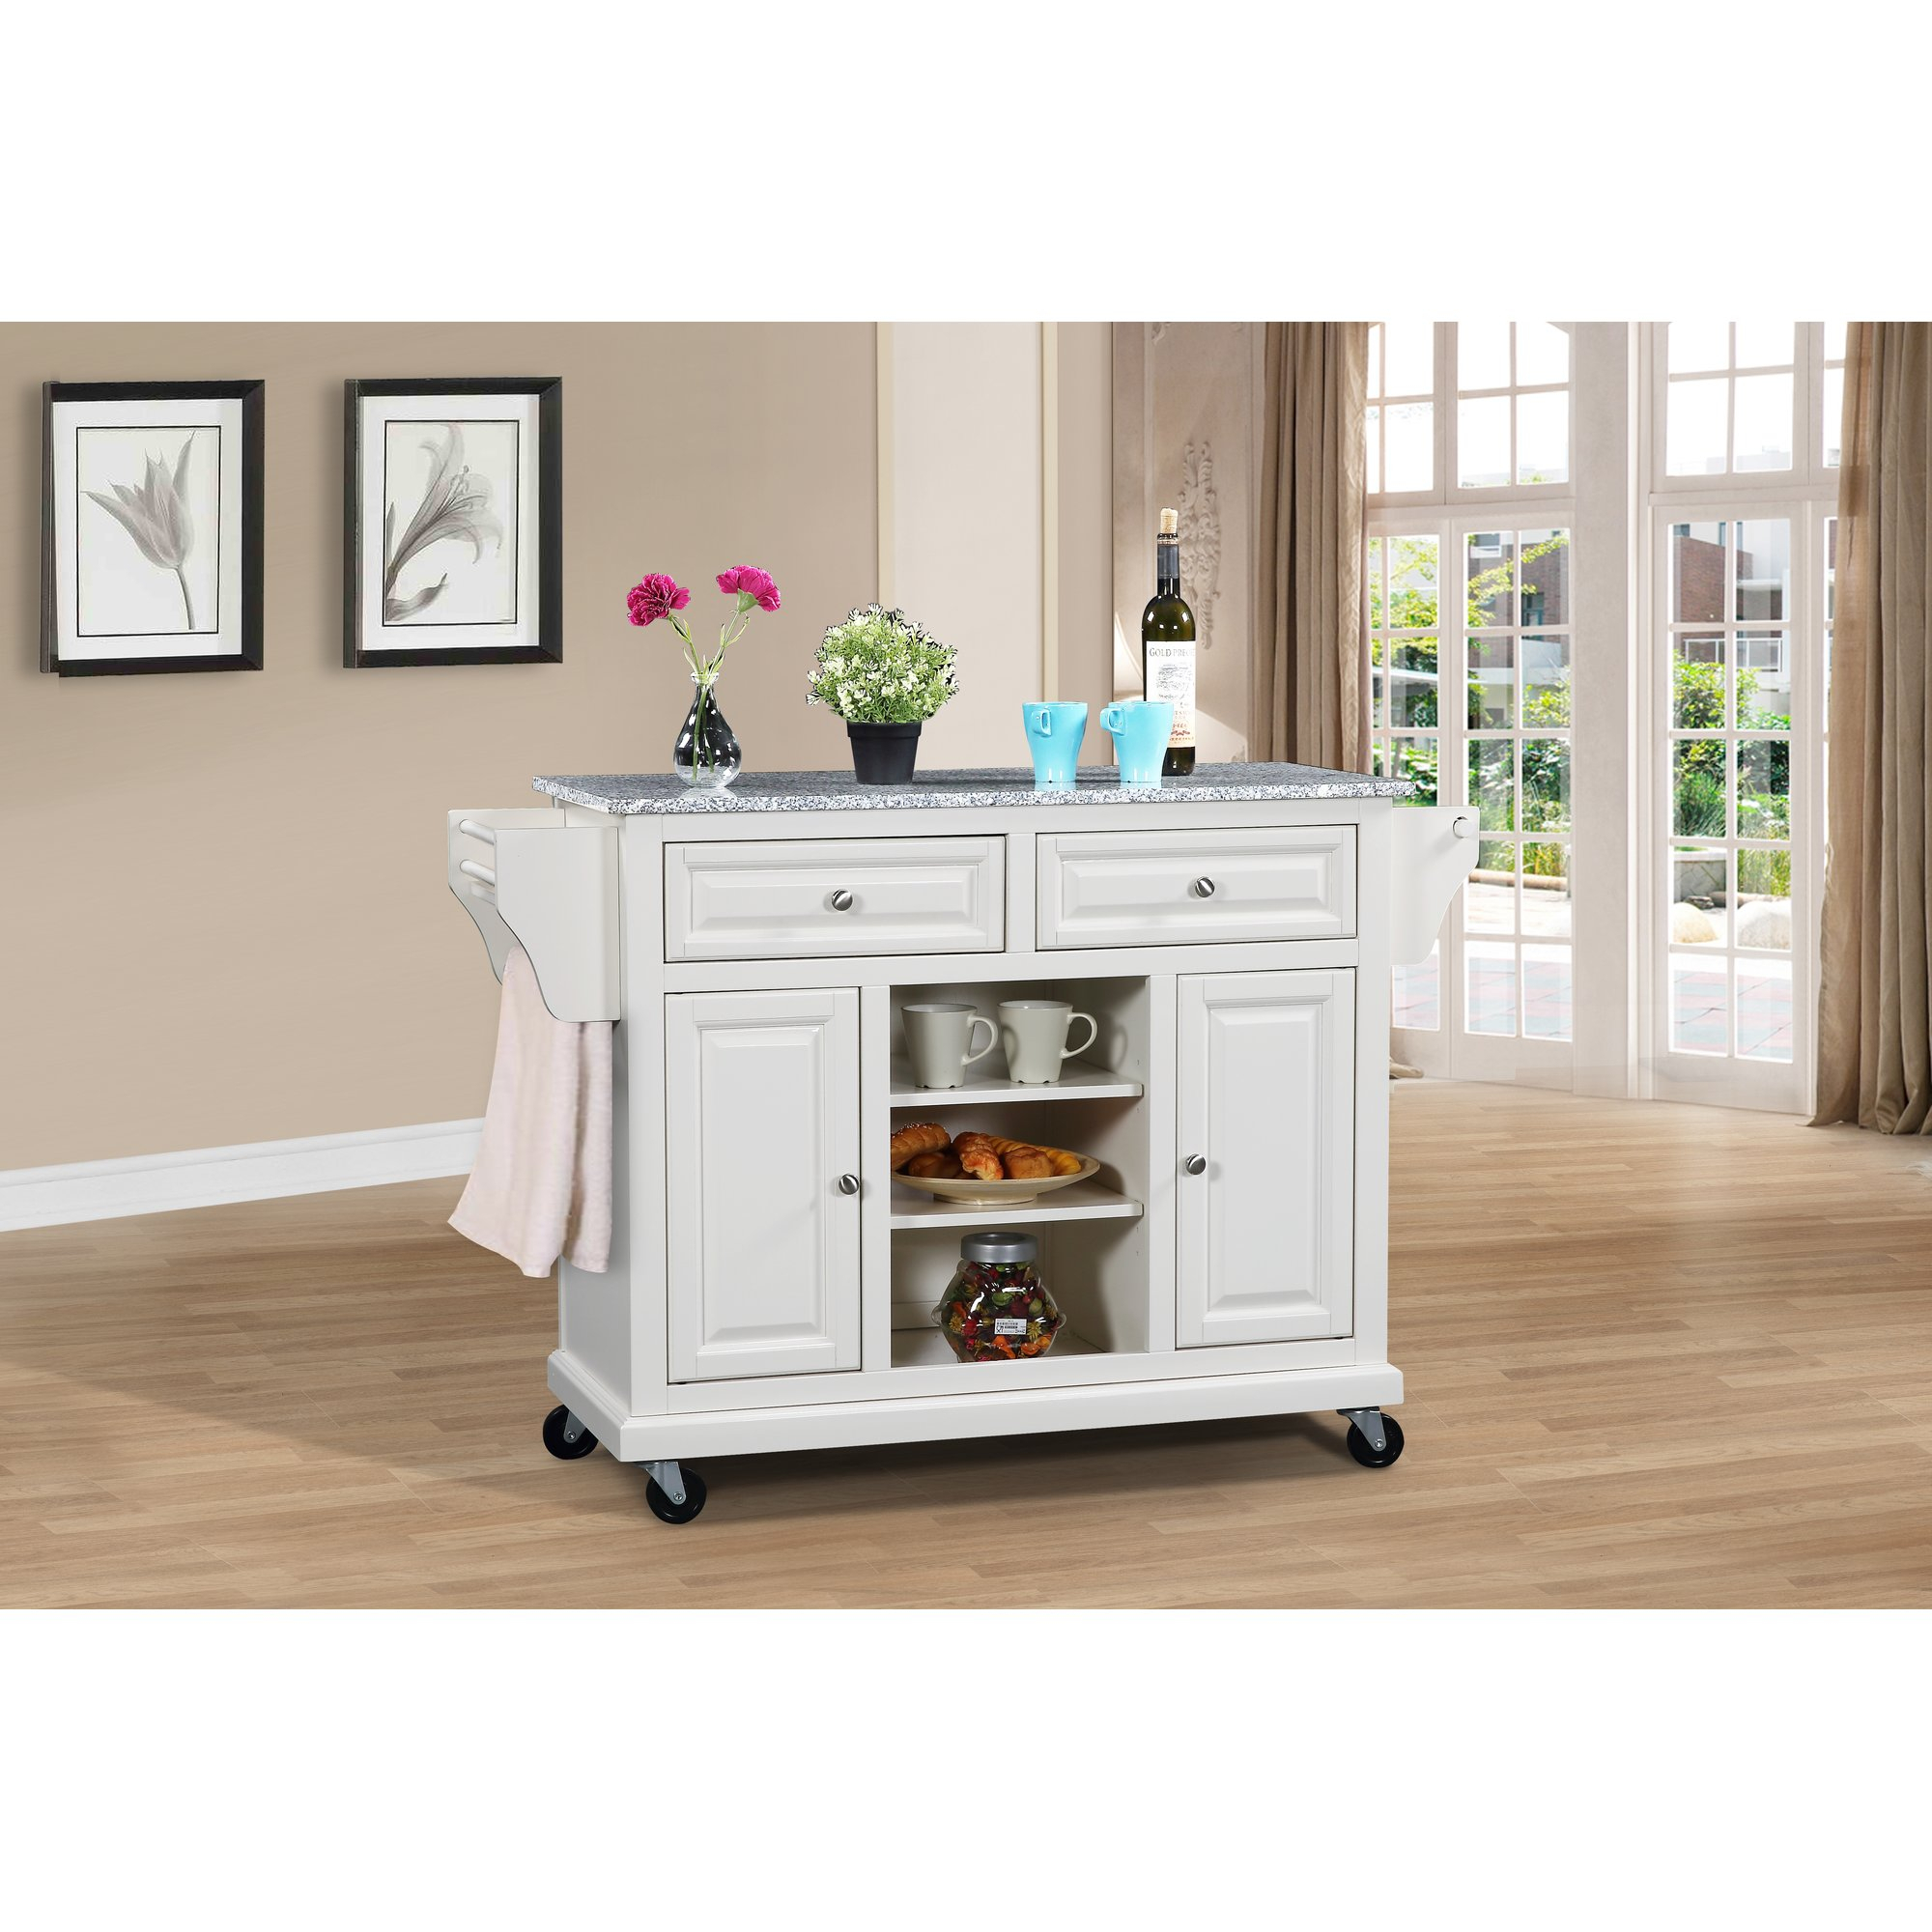 Inspiration about Wildon Home Kitchen Island With Granite Top Reviews New Age Pertaining To Most Recent Sideboards By Wildon Home (#20 of 20)